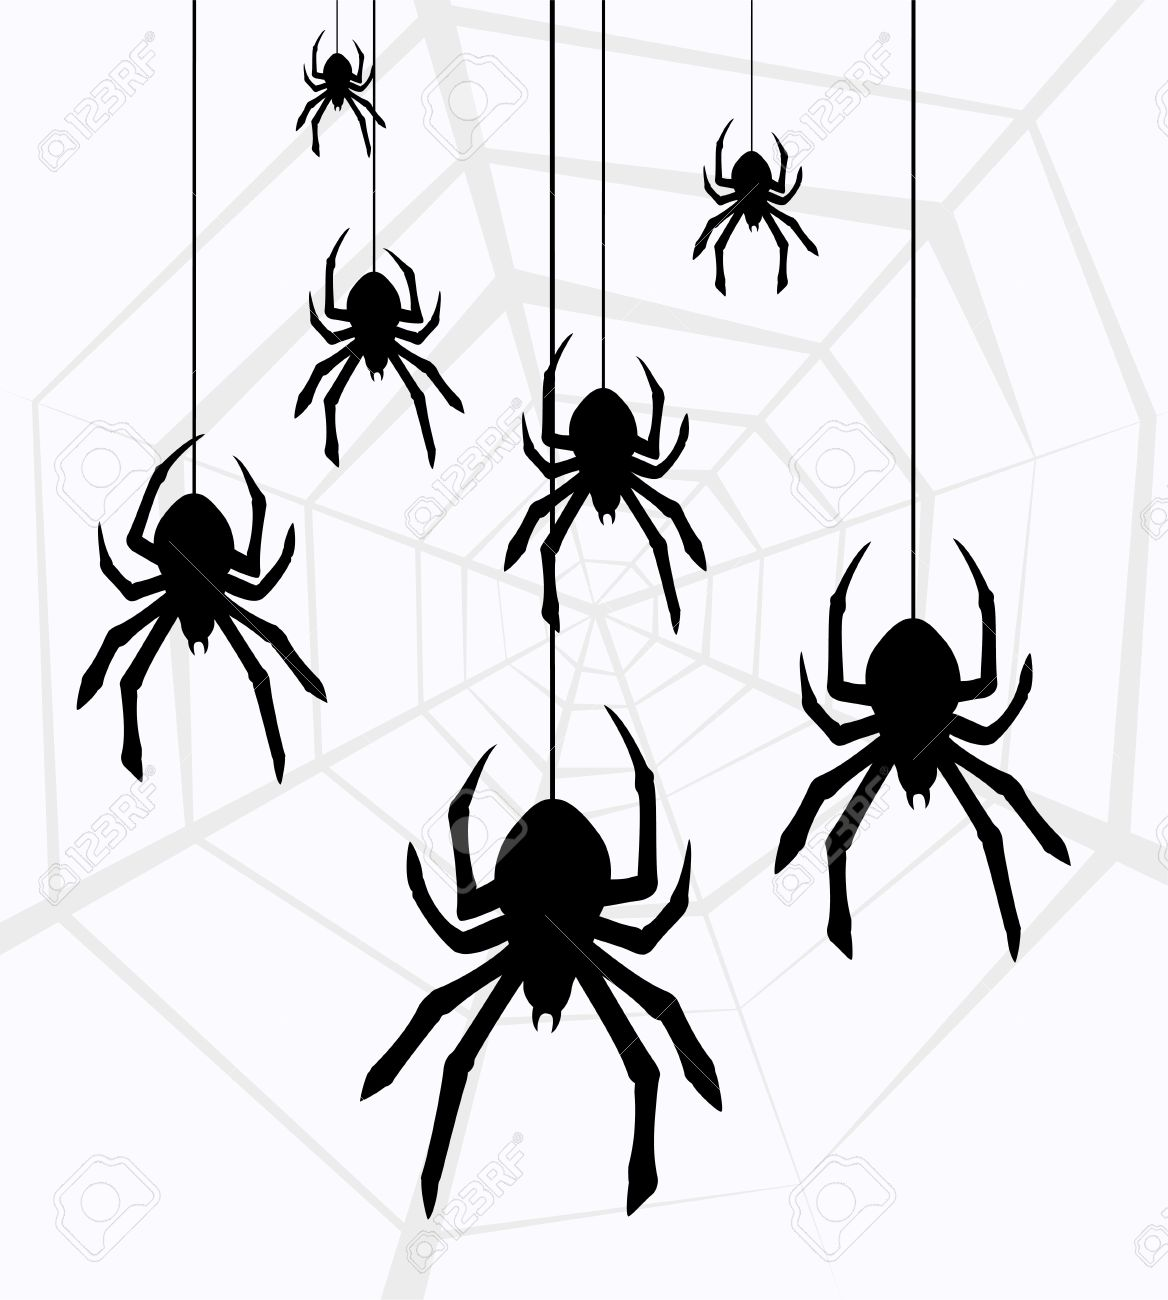 1168x1300 Spider Black And White Halloween Hanging Spider Clipart Free